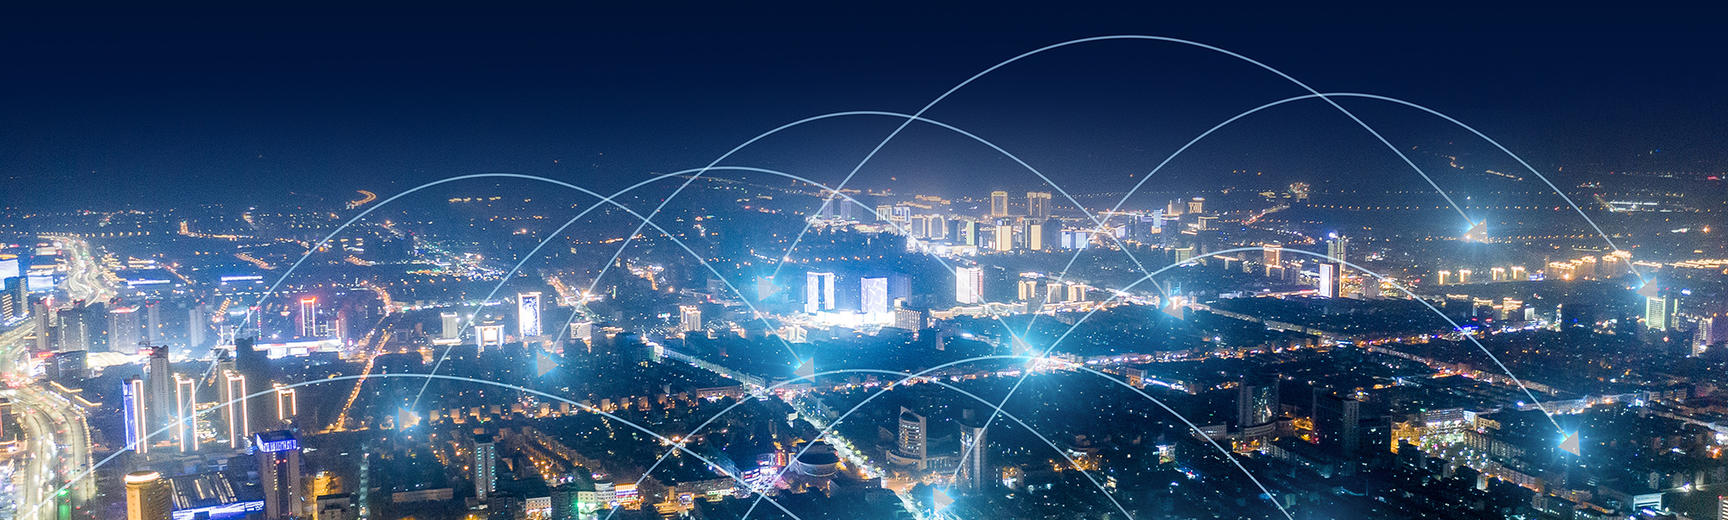 Connected network city at night